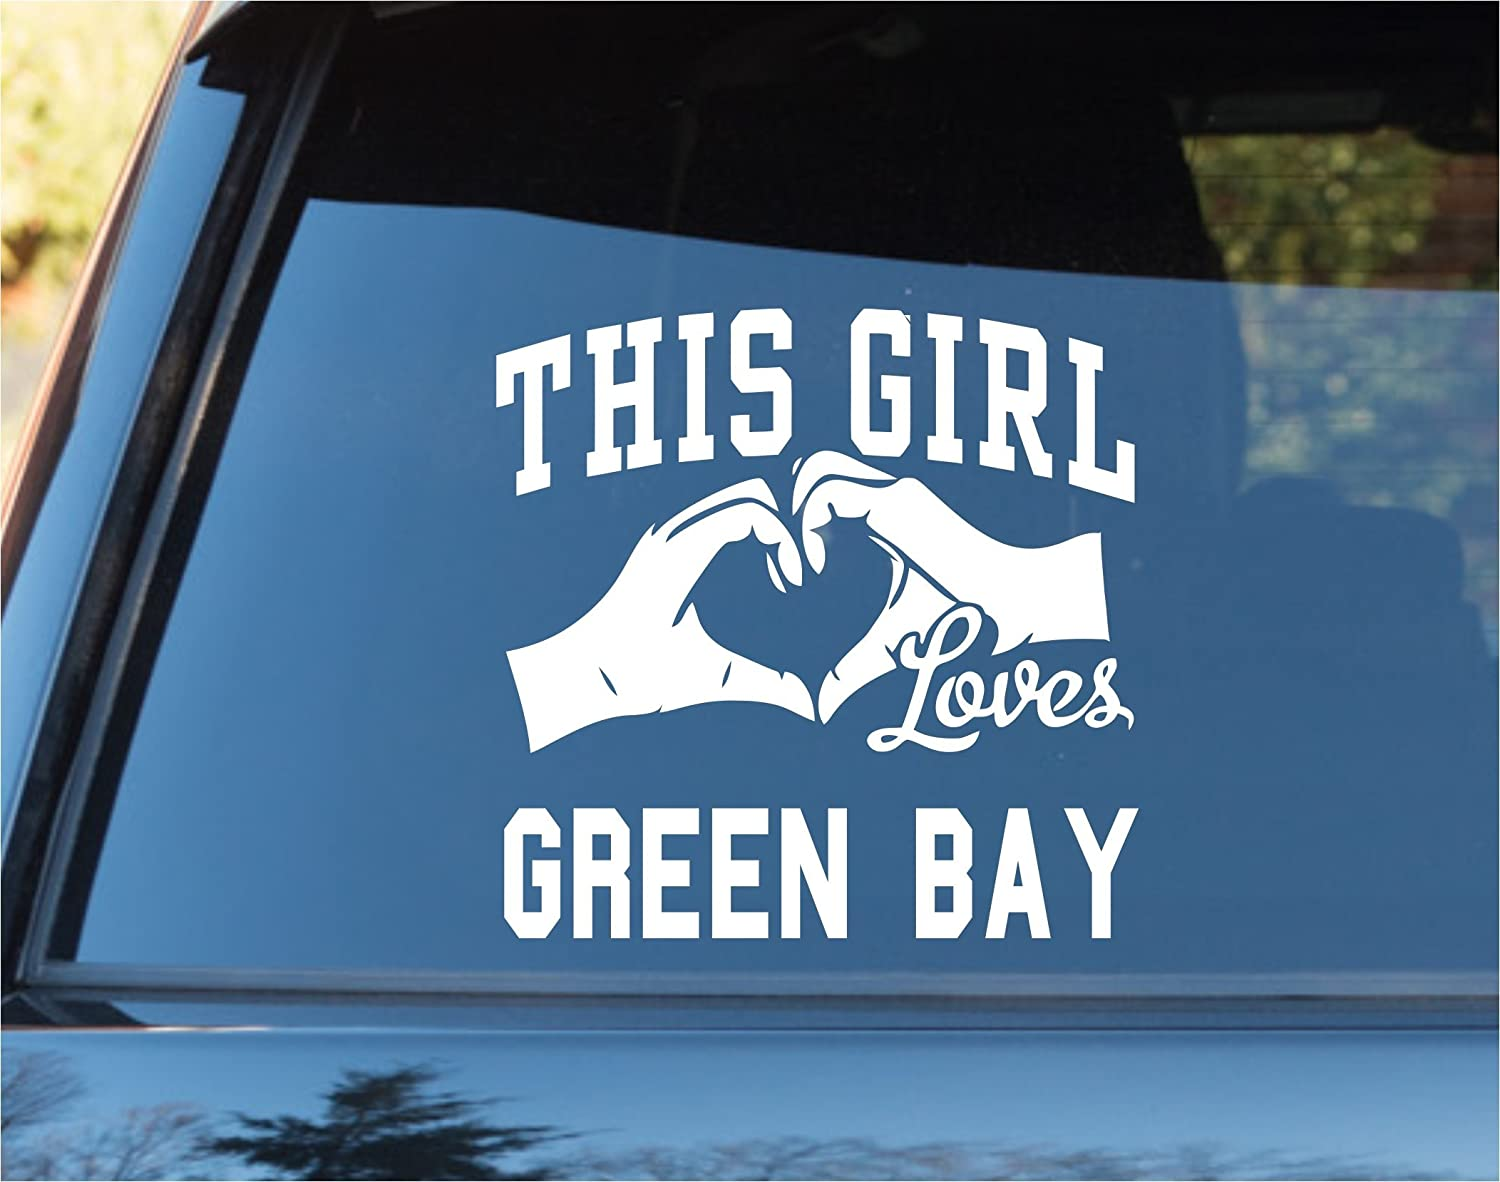 Amazoncom DABBLEDOWN DECALS This Girl Loves Green Bay Decal - Car sticker decals vinyl girl